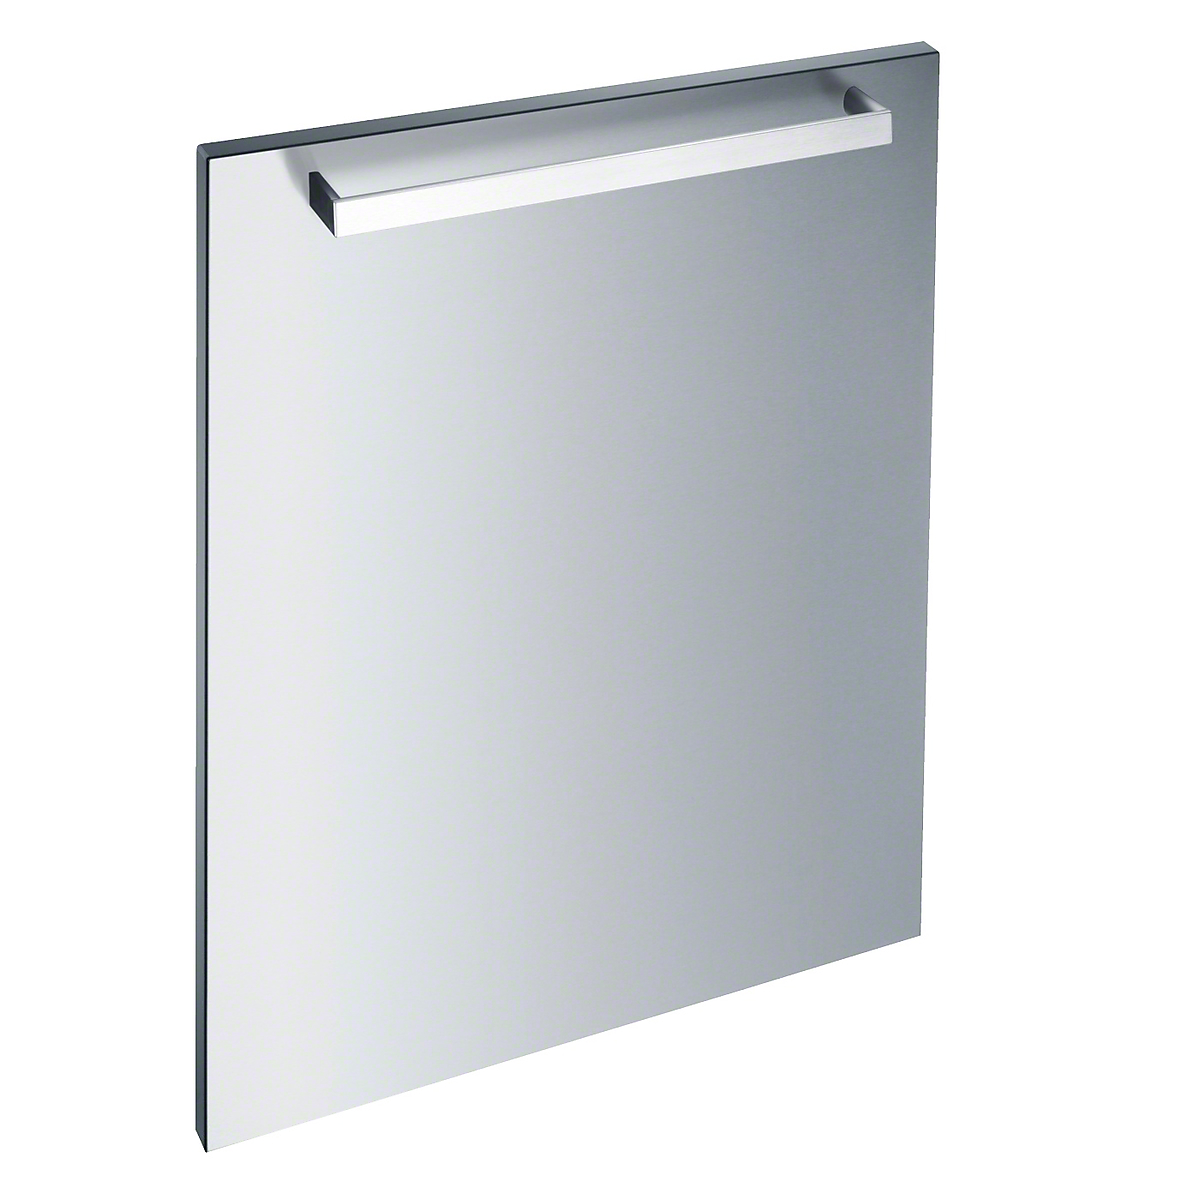 Int. front panel: W x H, 24 x 30 inClean Touch Steel™